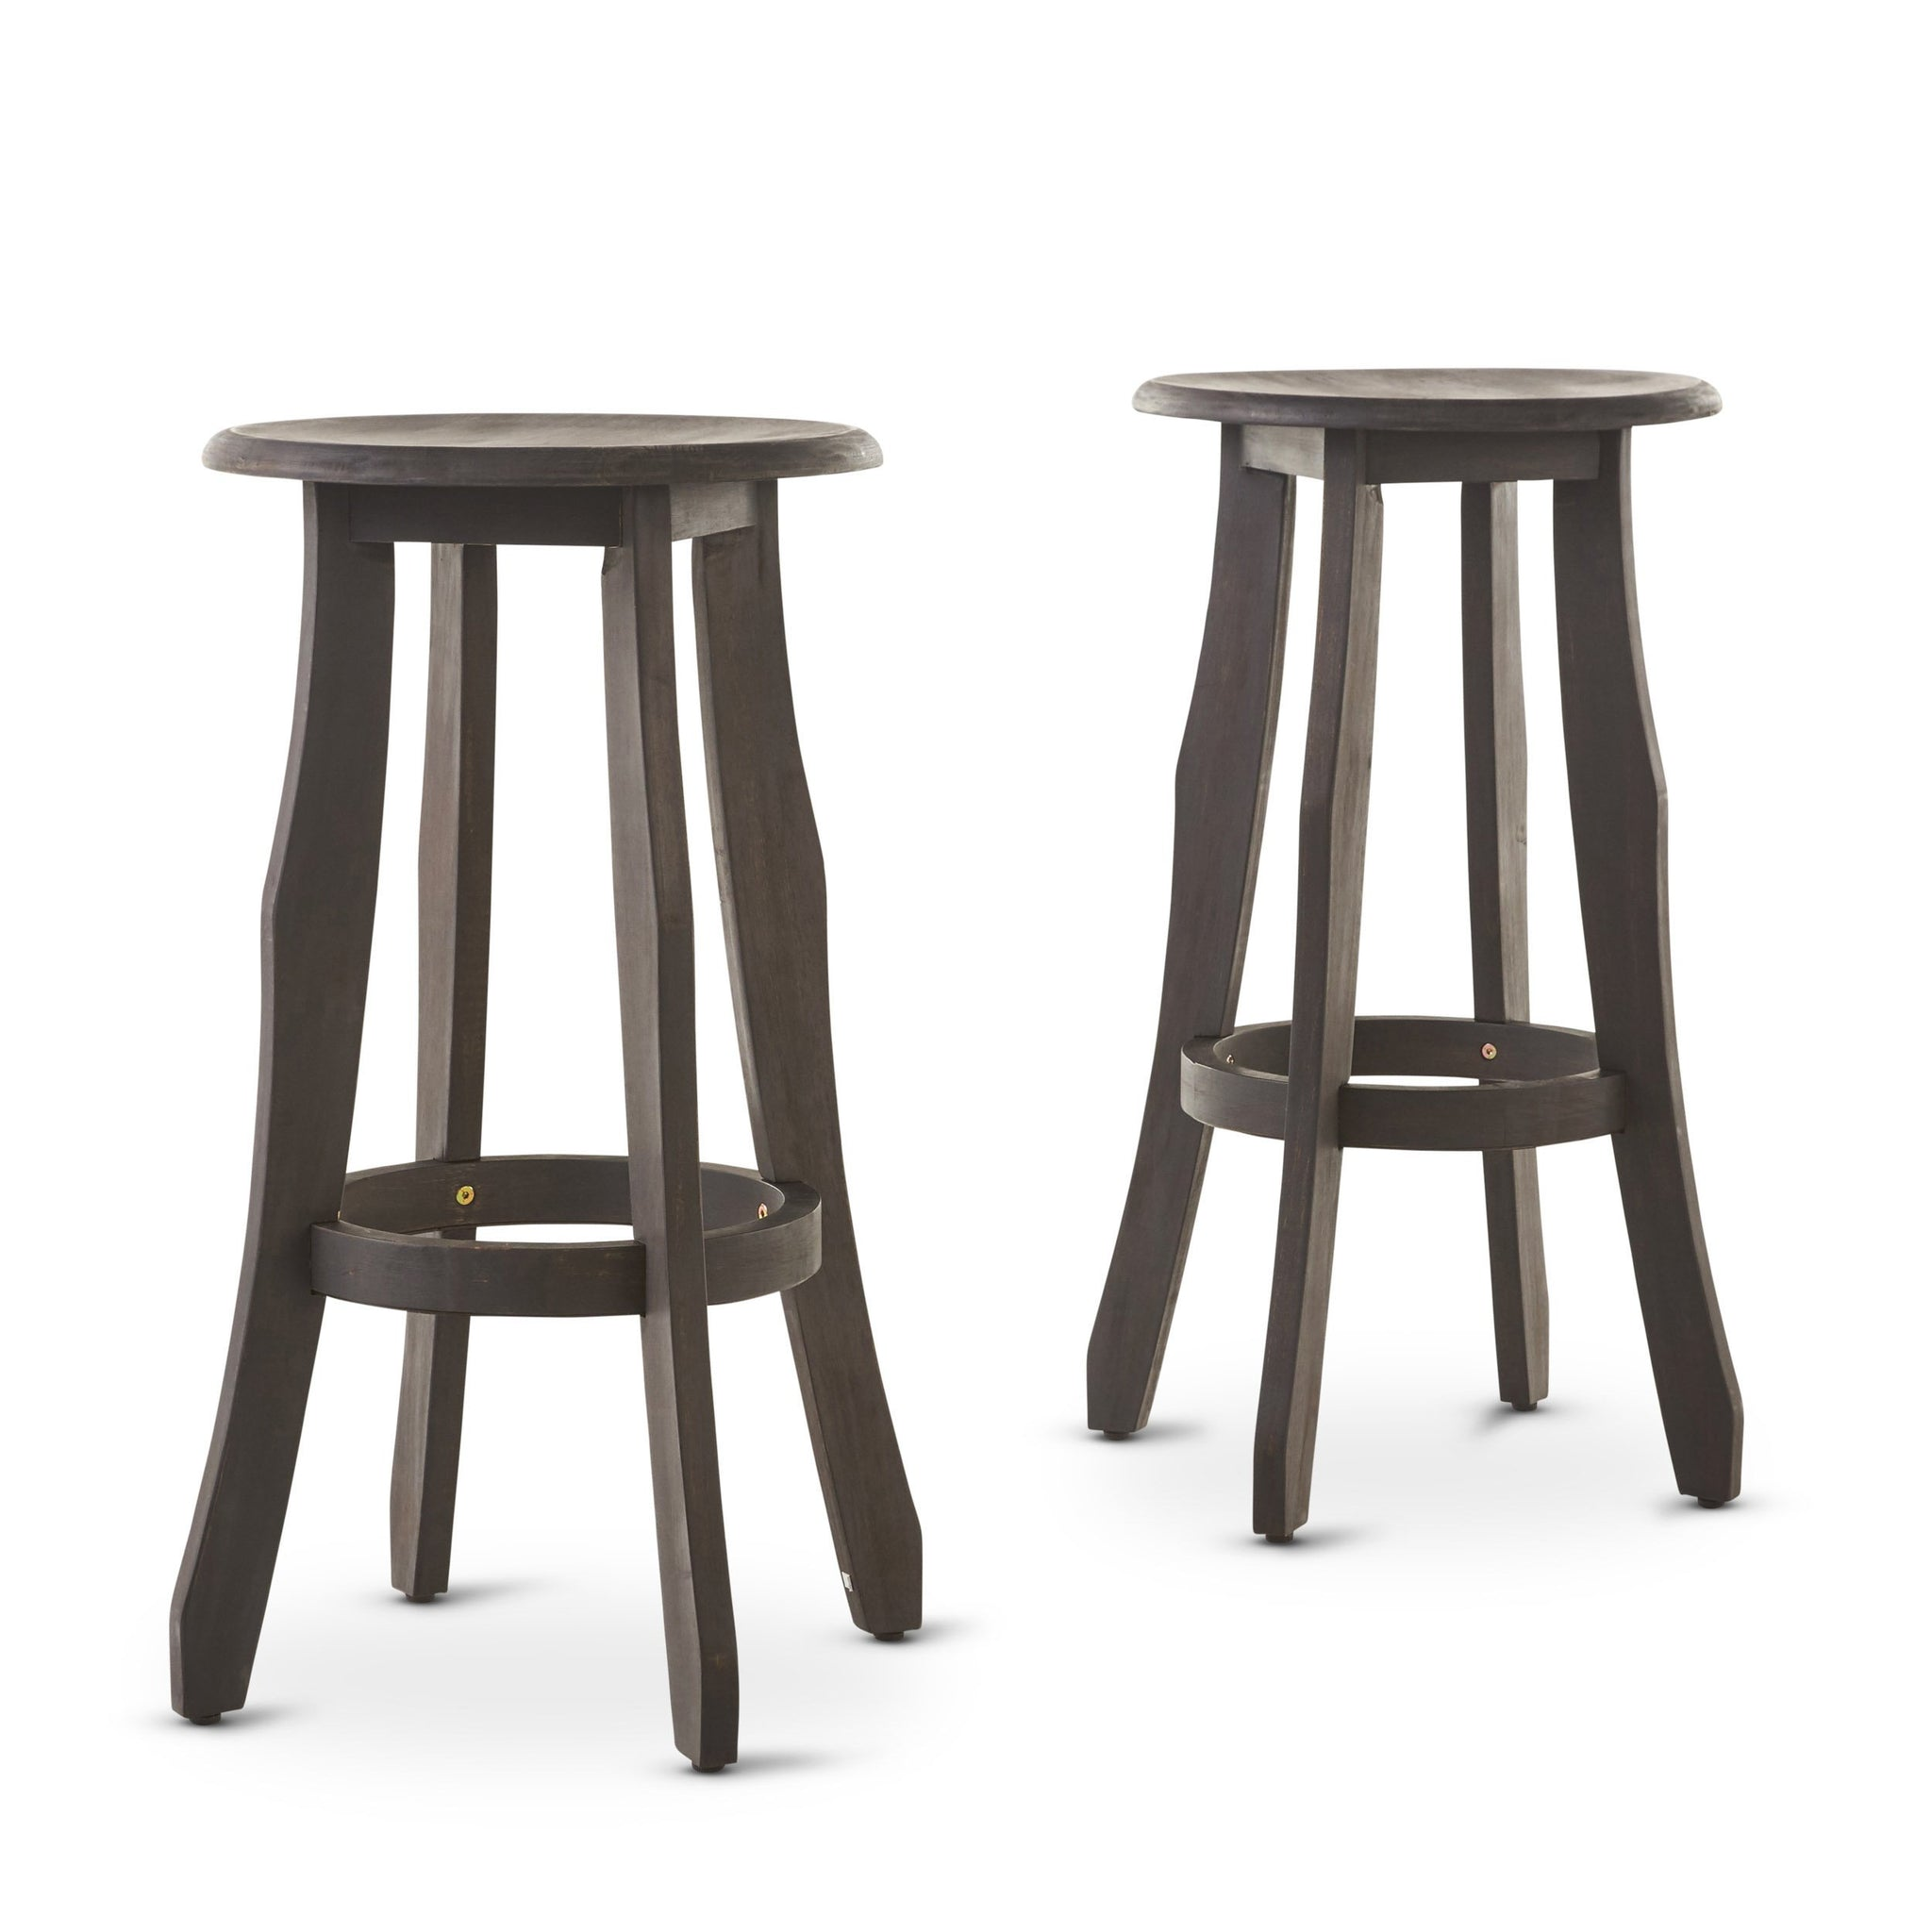 Ruger Indoor Finished Acacia Wood Barstools (Set Of 2)